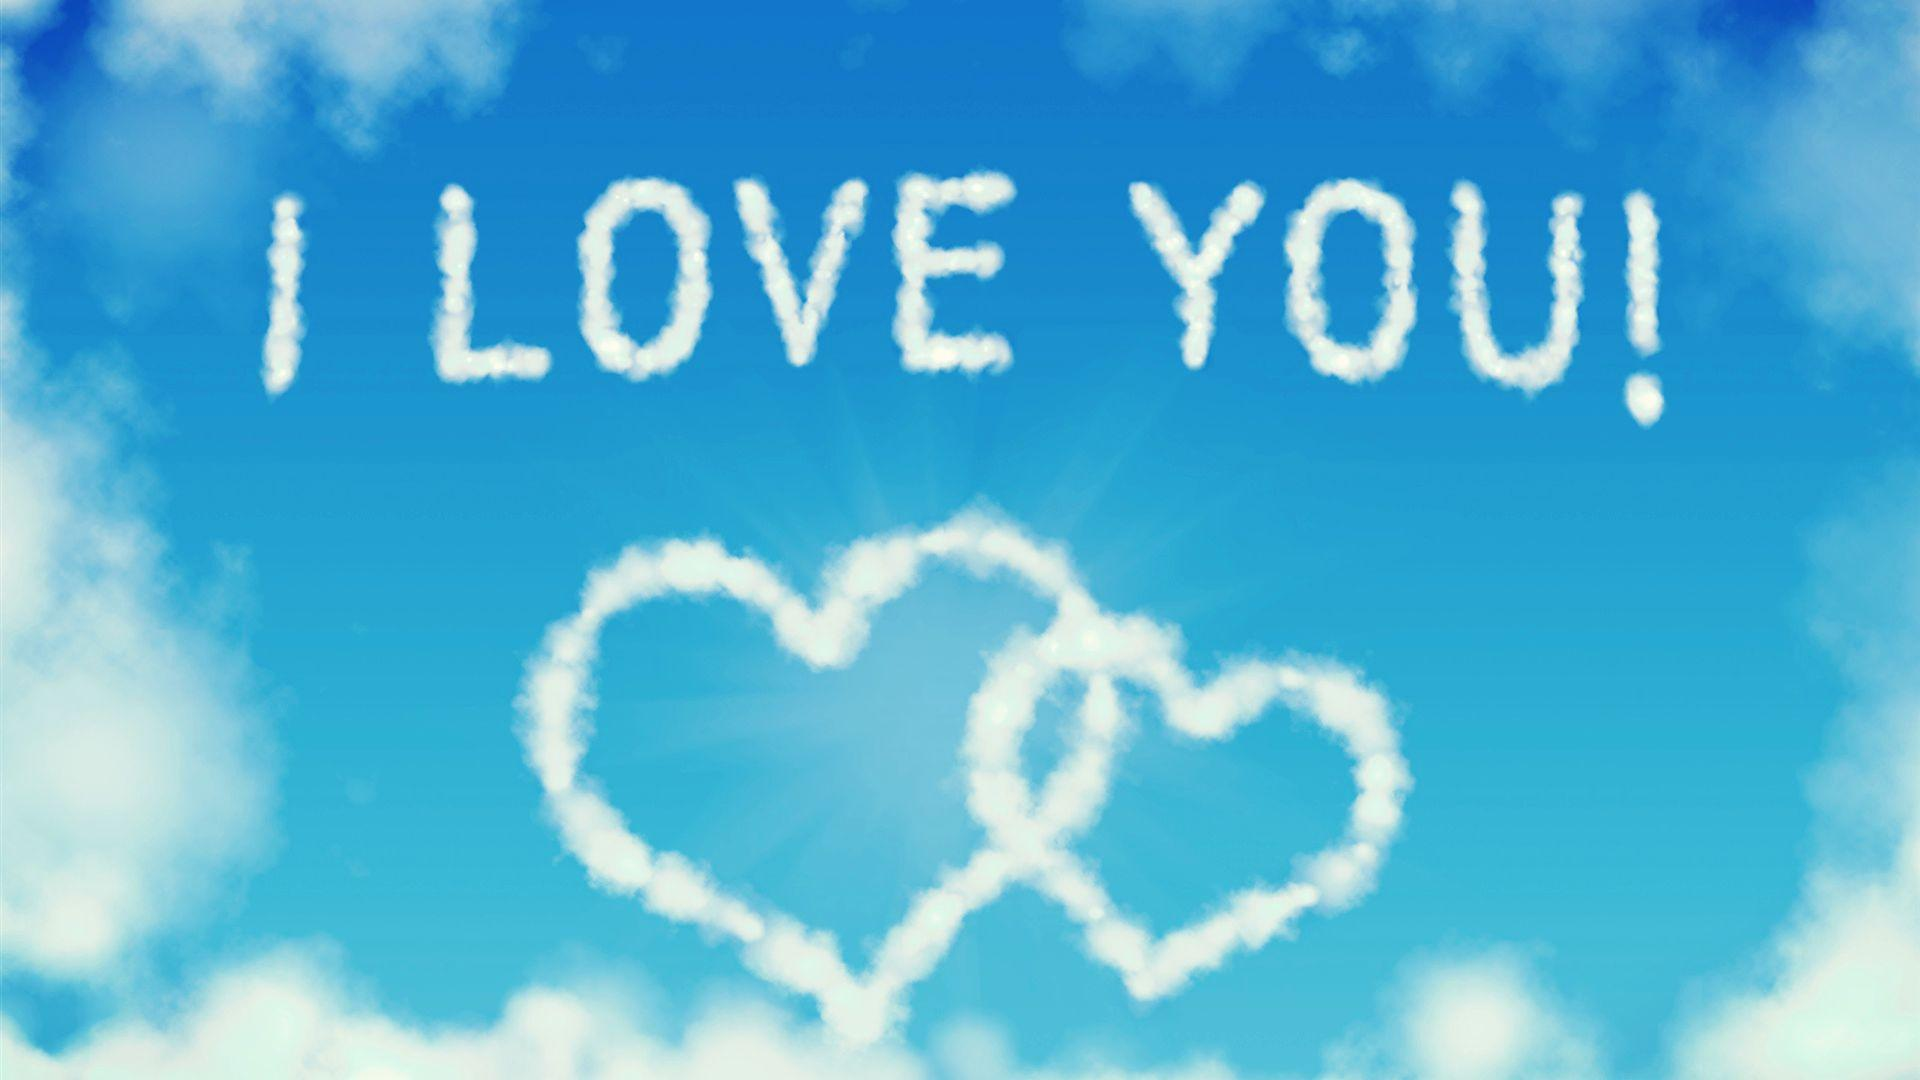 I Love You You Love Me Wallpaper : I Love You Wallpapers - Wallpaper cave